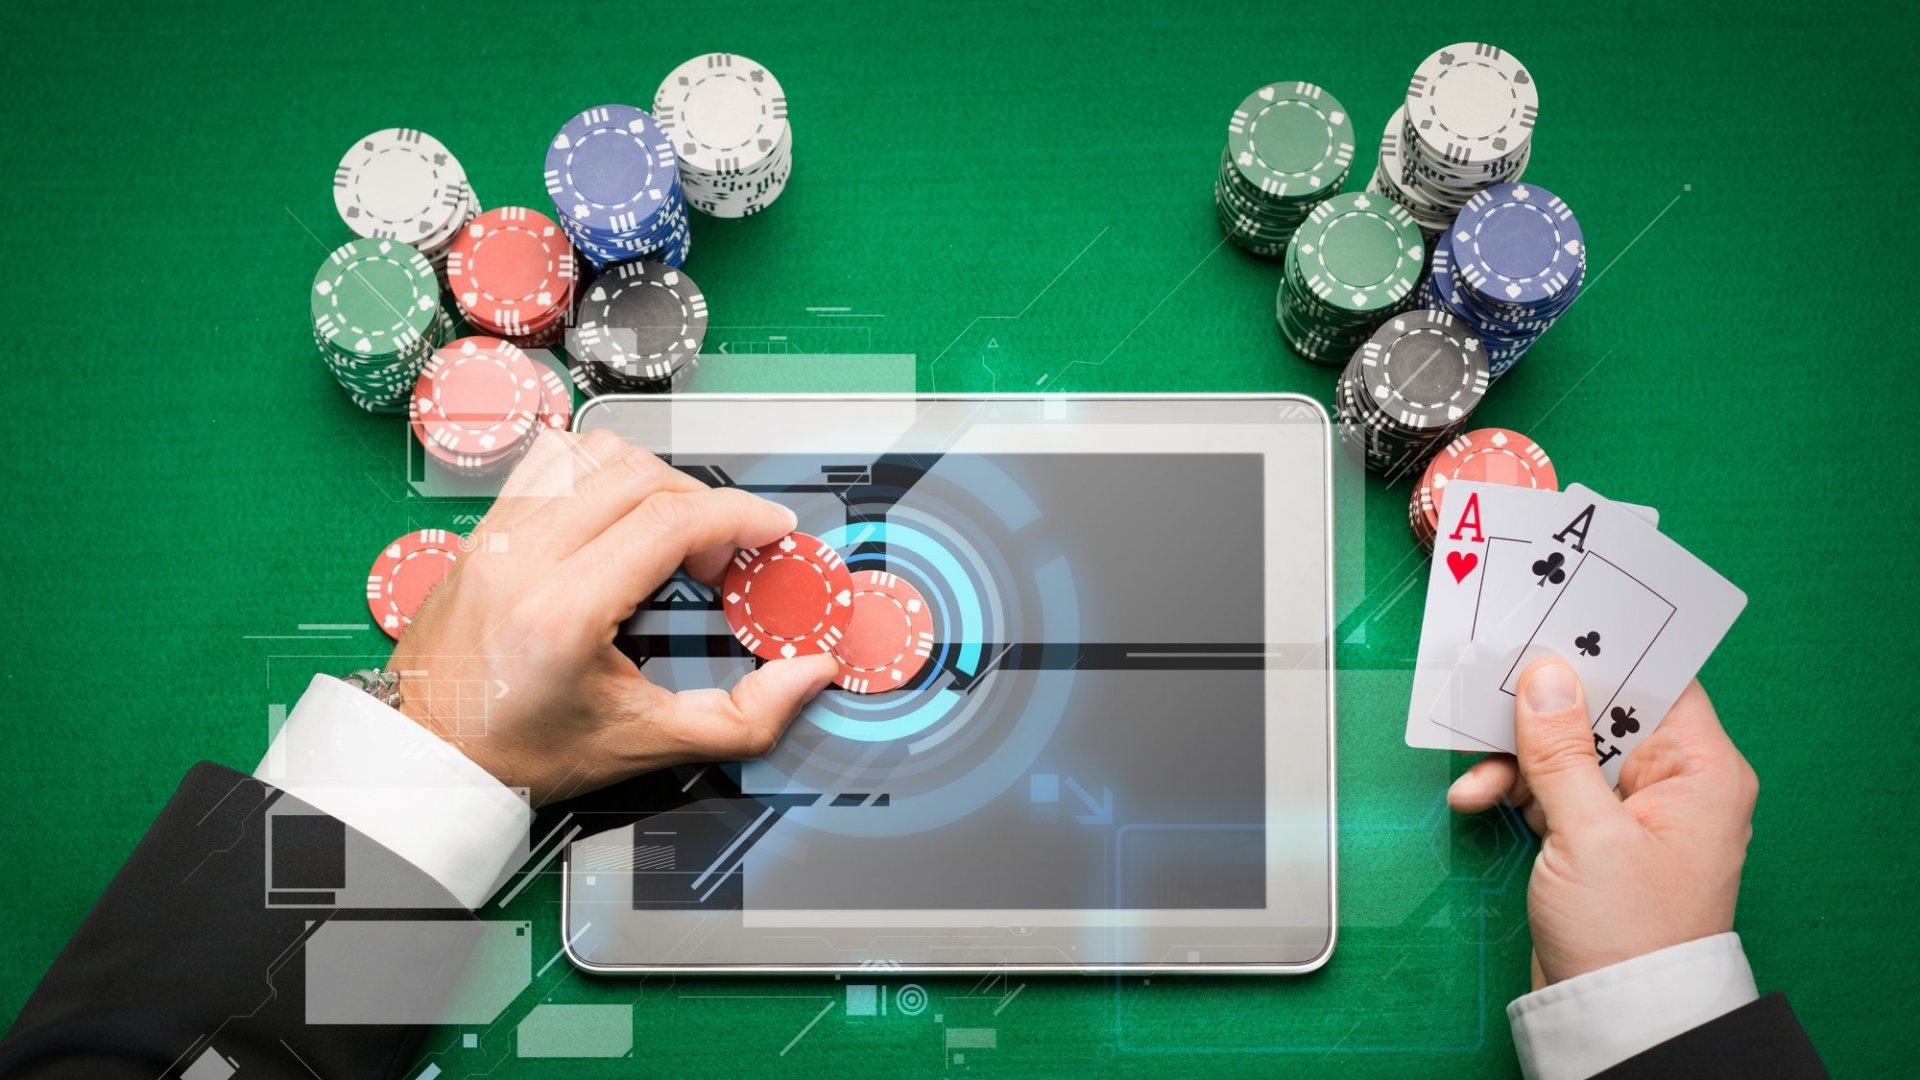 Get Fundamentally The Very Out Online Casino And FB